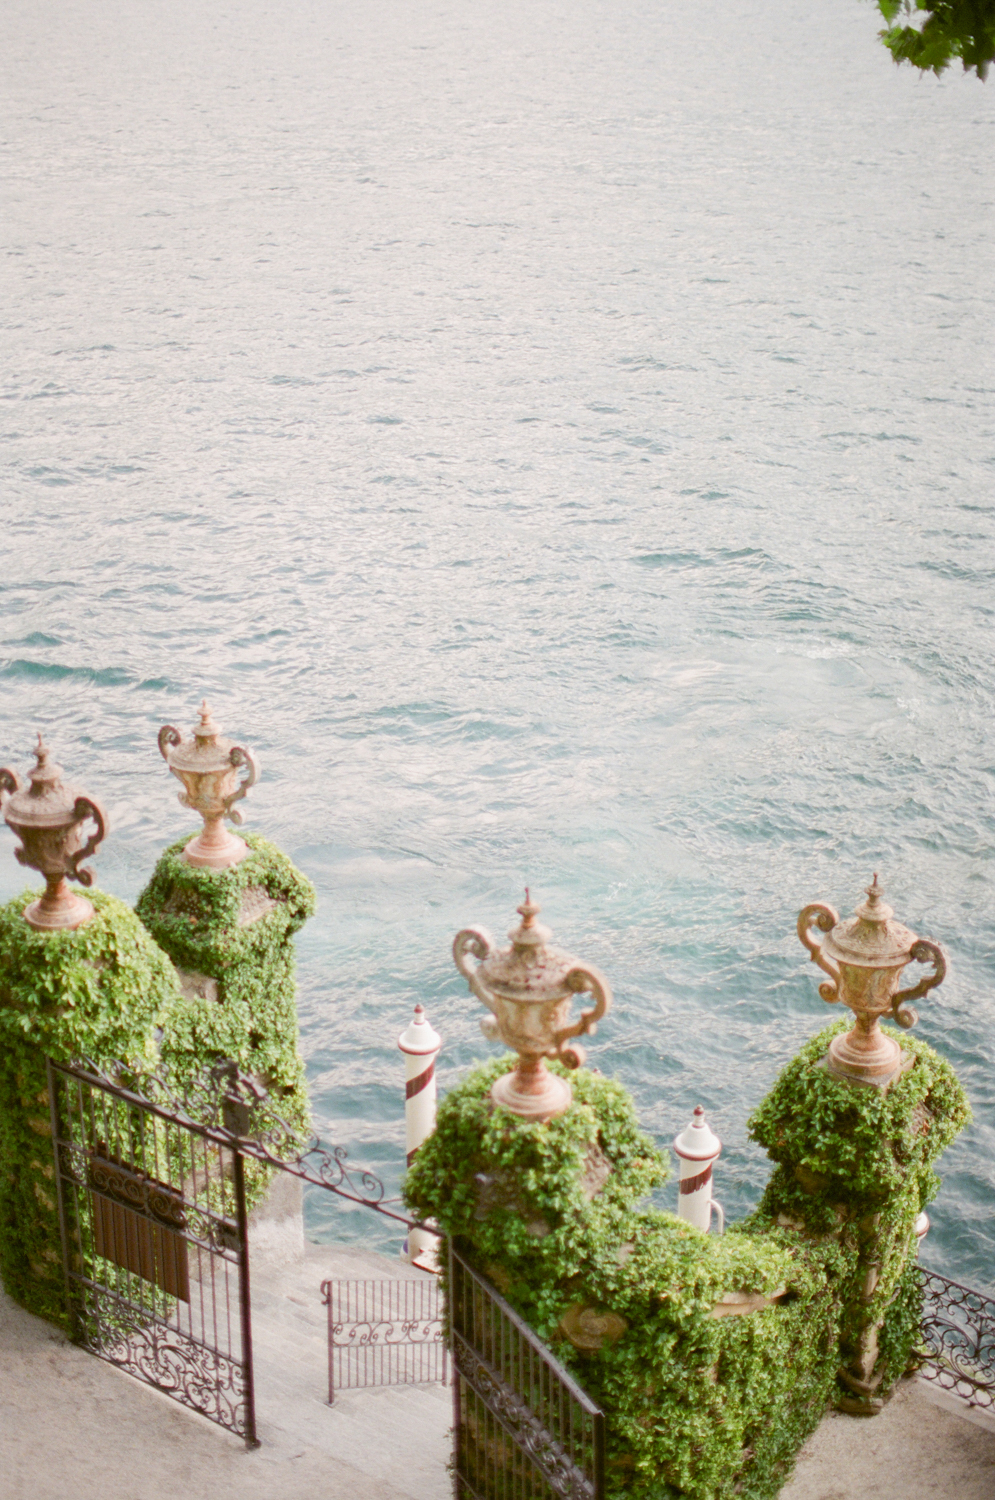 lake como villa balbaniello wedding photographer_16.JPG